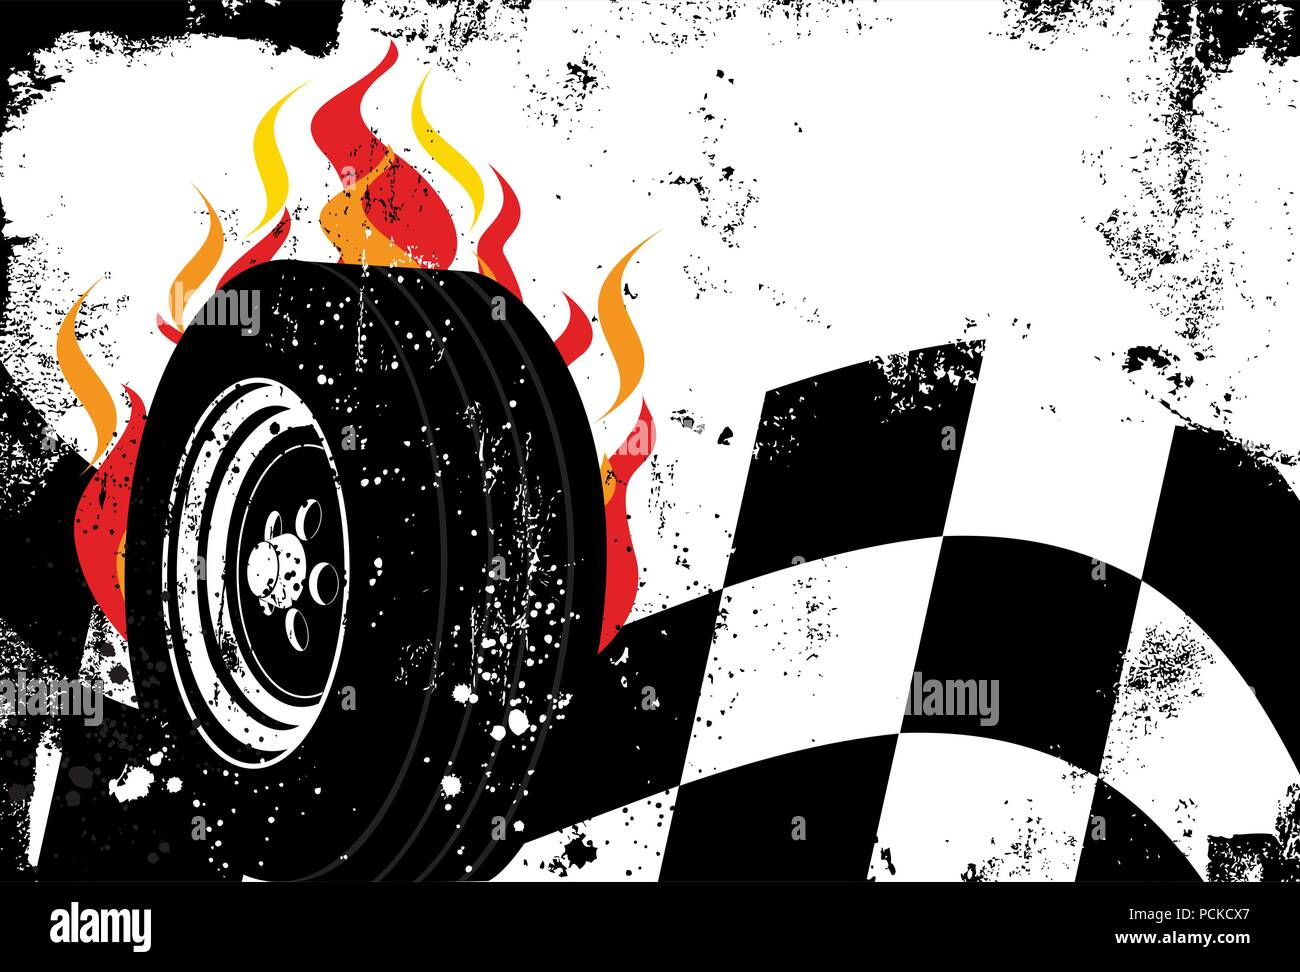 checkered flag vector vectors stock photos checkered flag vector